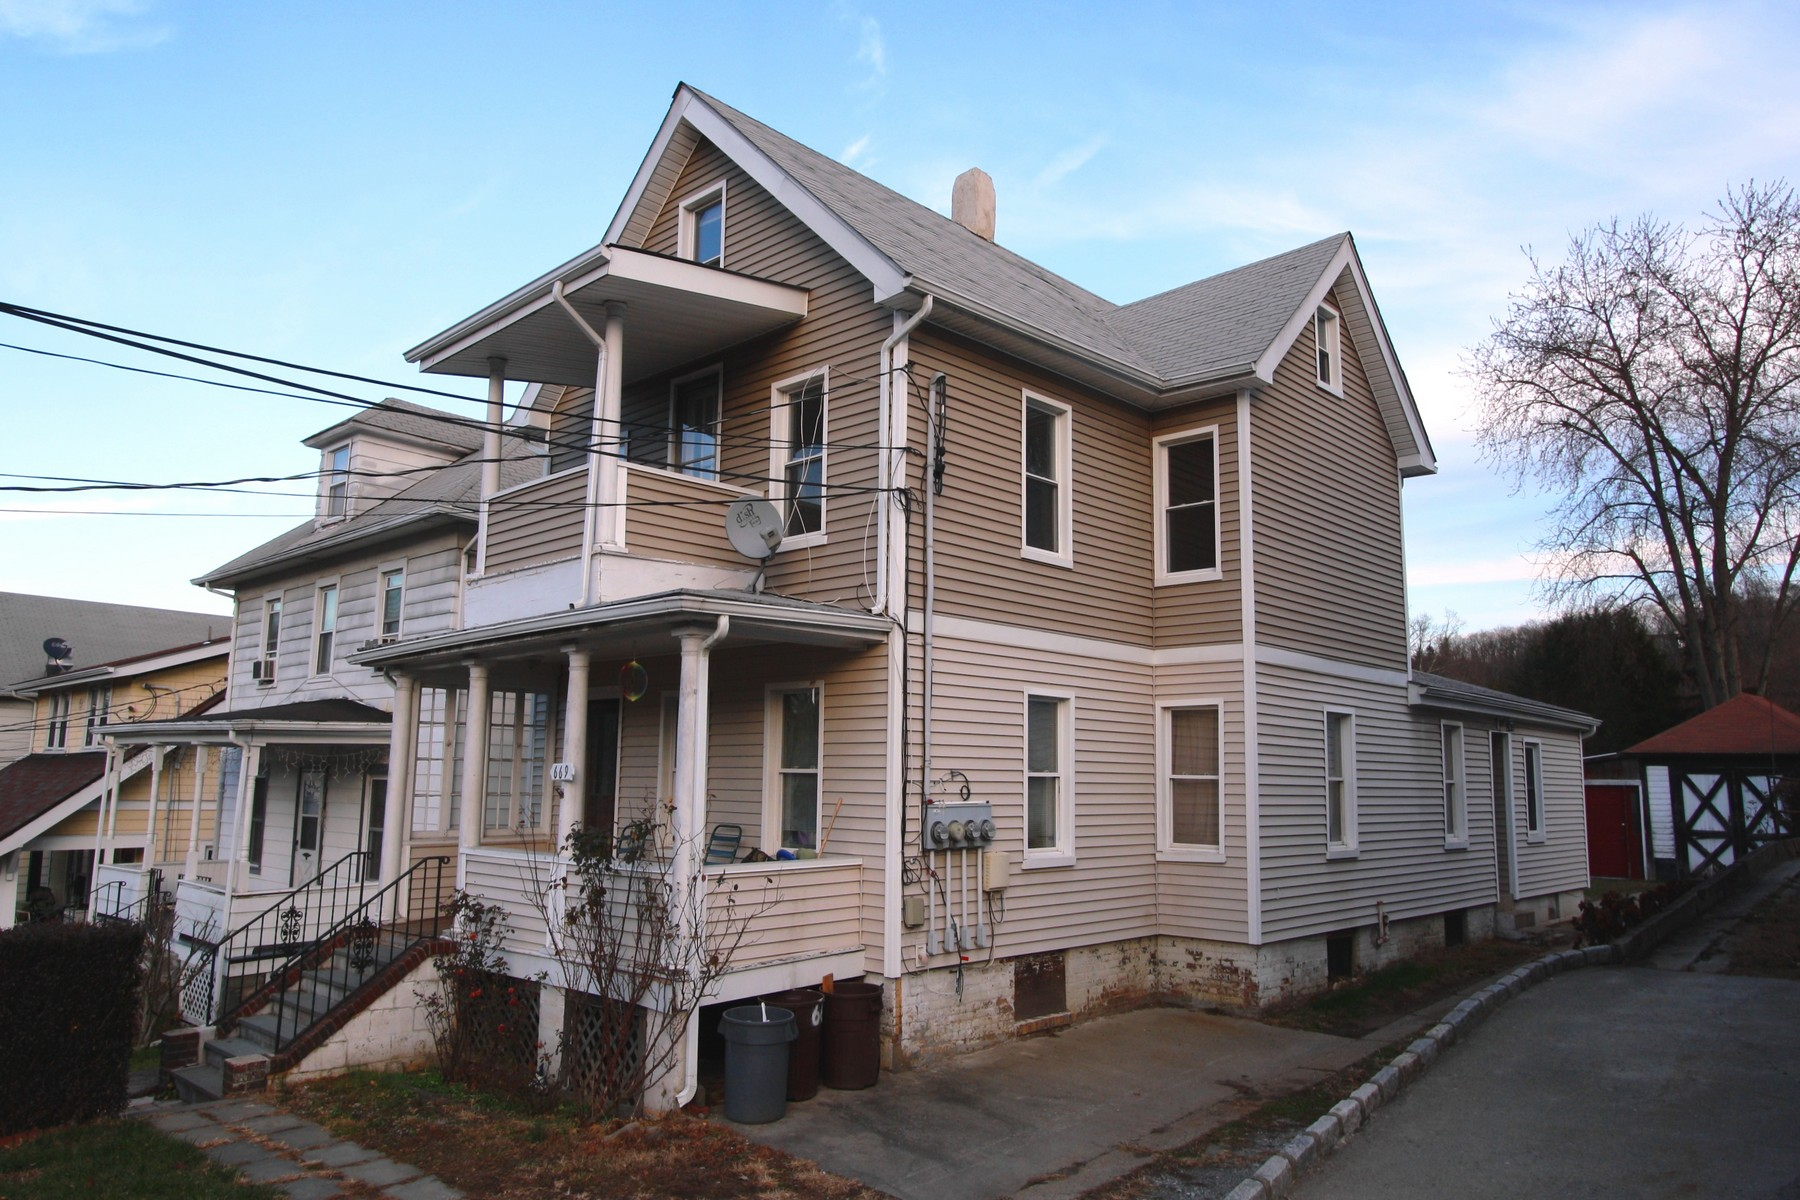 Multi-Family Home for Sale at Three Family Investment Property 669 Highland Avenue Peekskill, New York 10566 United States